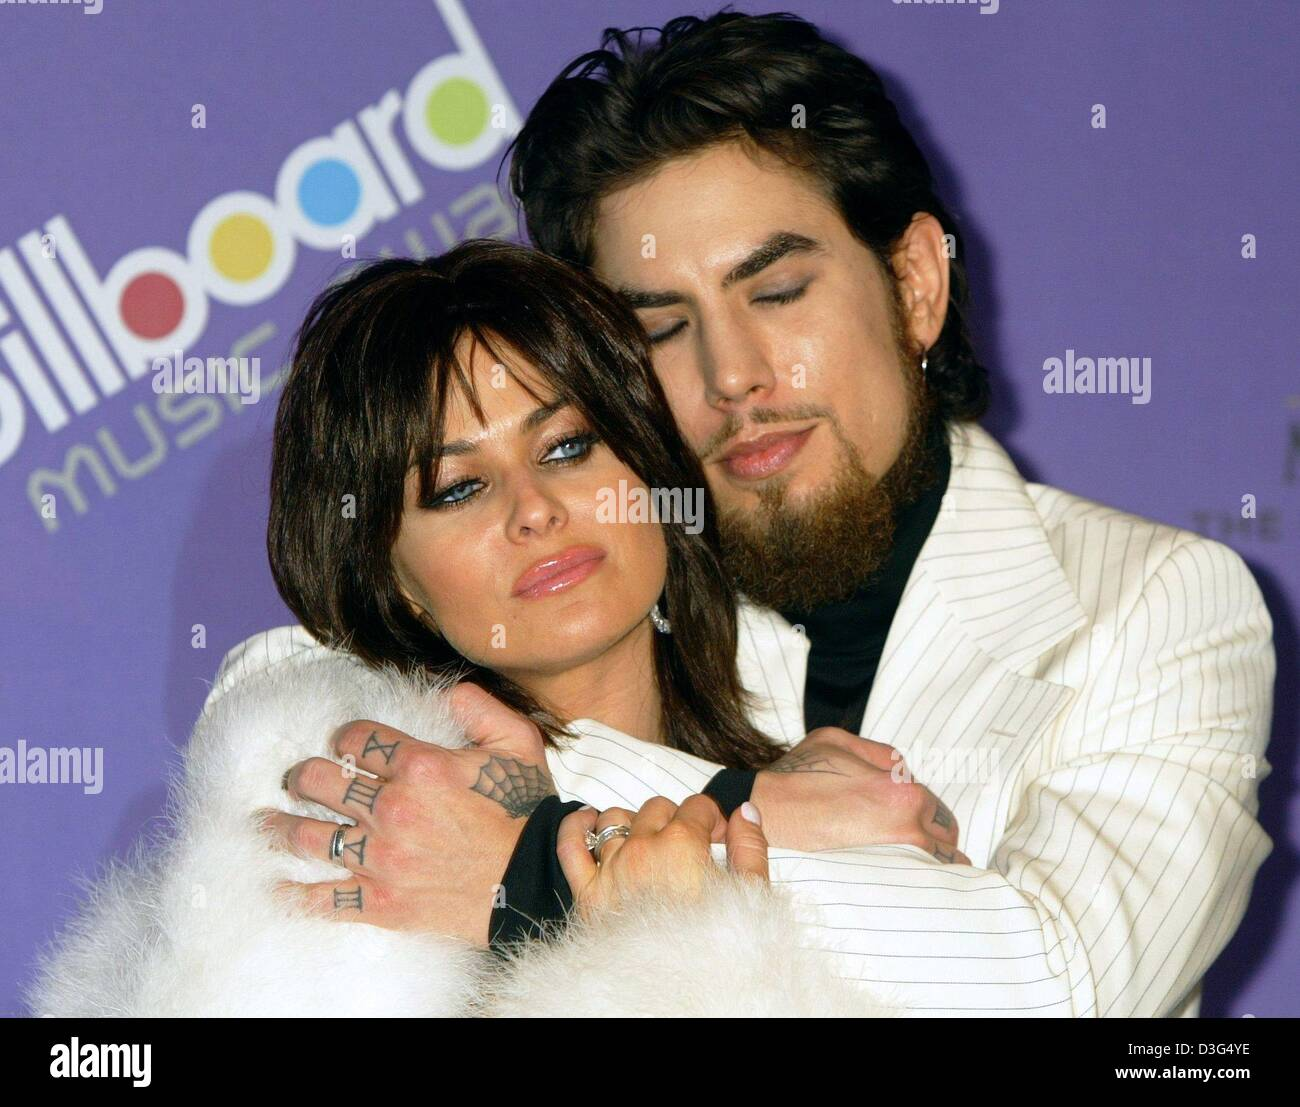 (dpa) - Musician Dave Navarro and his wife, US actress Carmen Electra, pose dreamily ahead of the Billboard awards - Stock Image